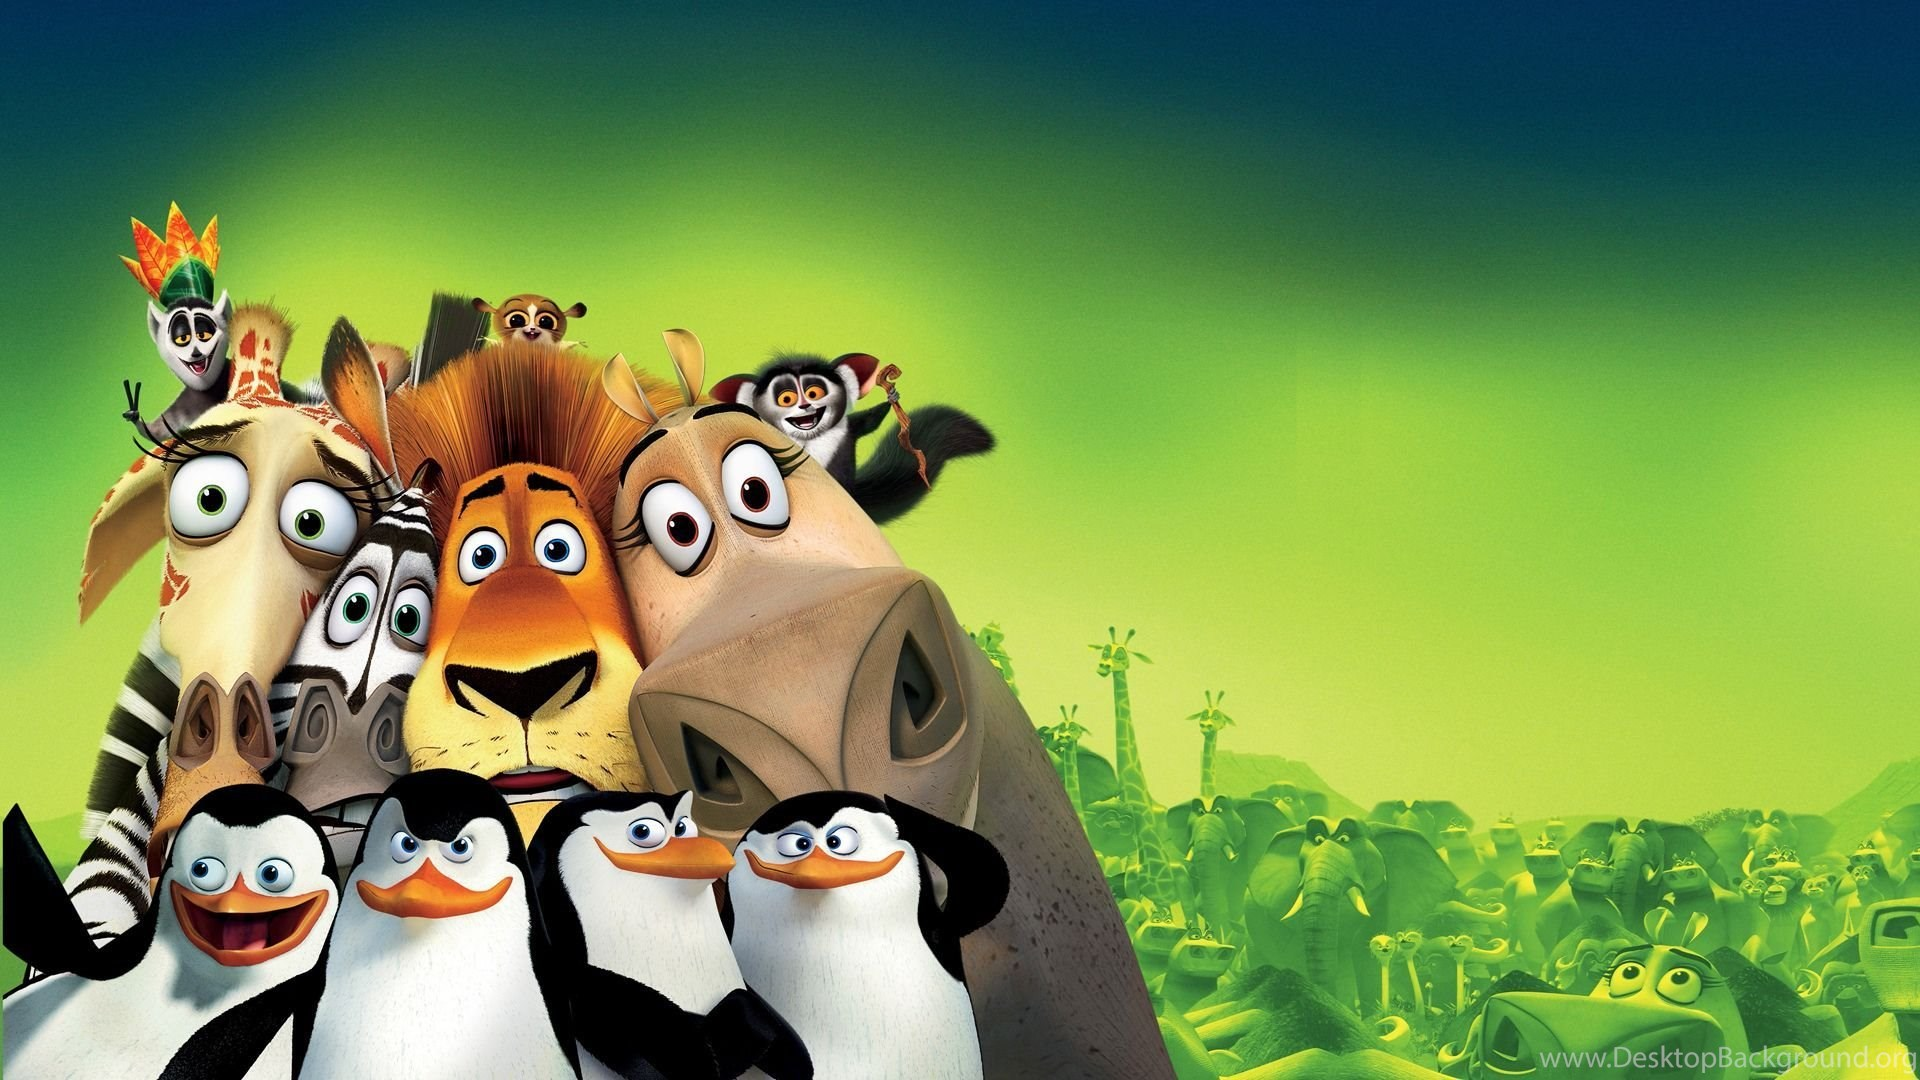 Free full hd wallpapers hd wallpapers madagascar is one of - Madagascar wallpaper ...